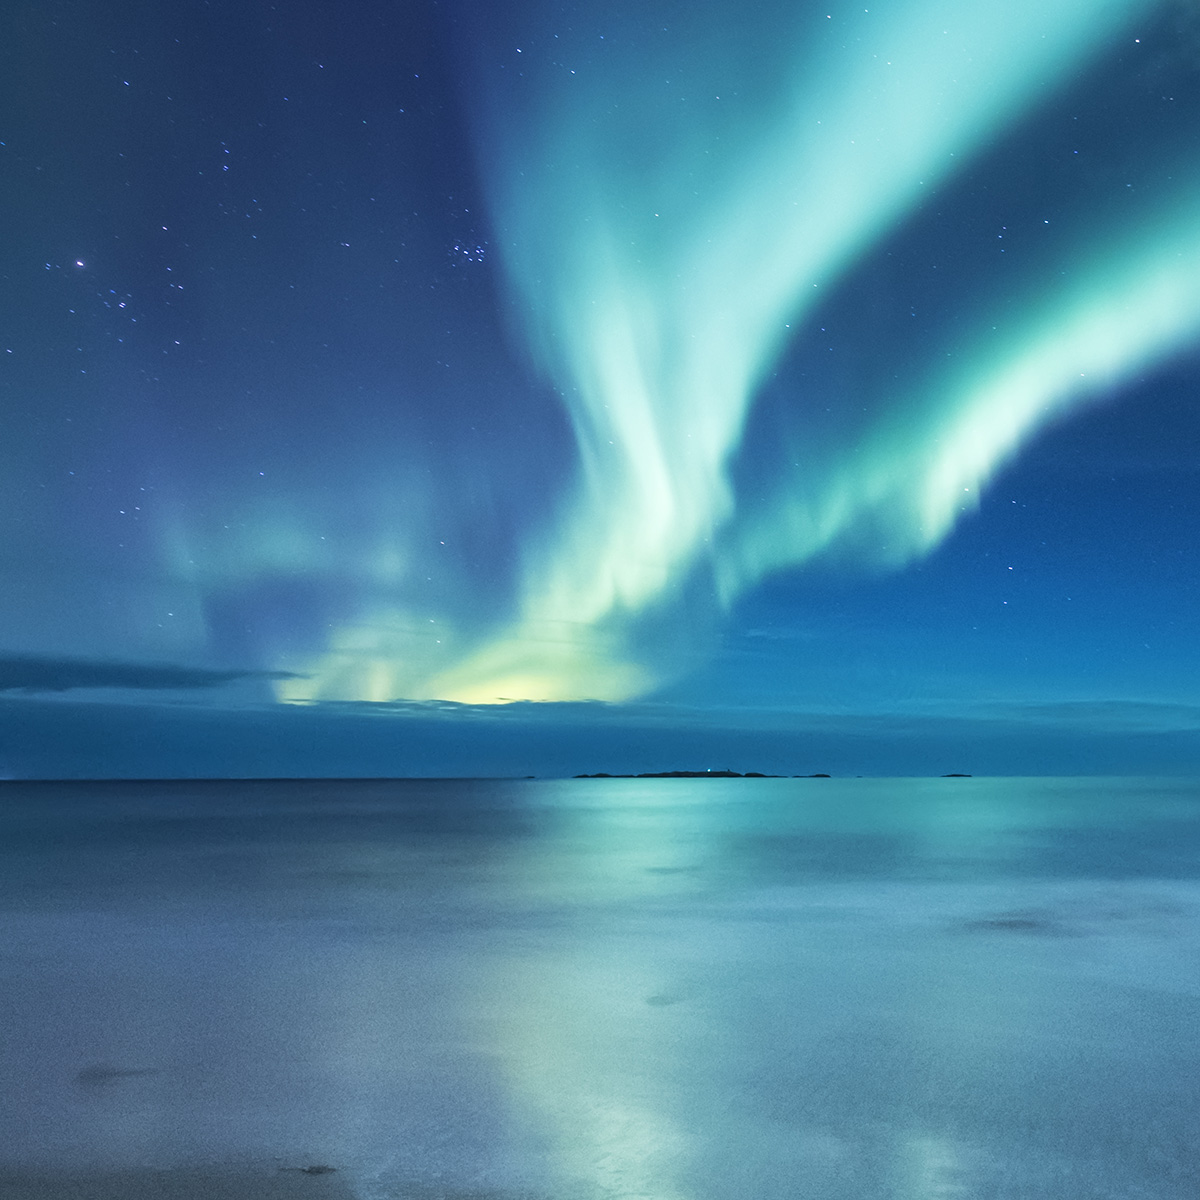 Sea with northern lights sky reflection